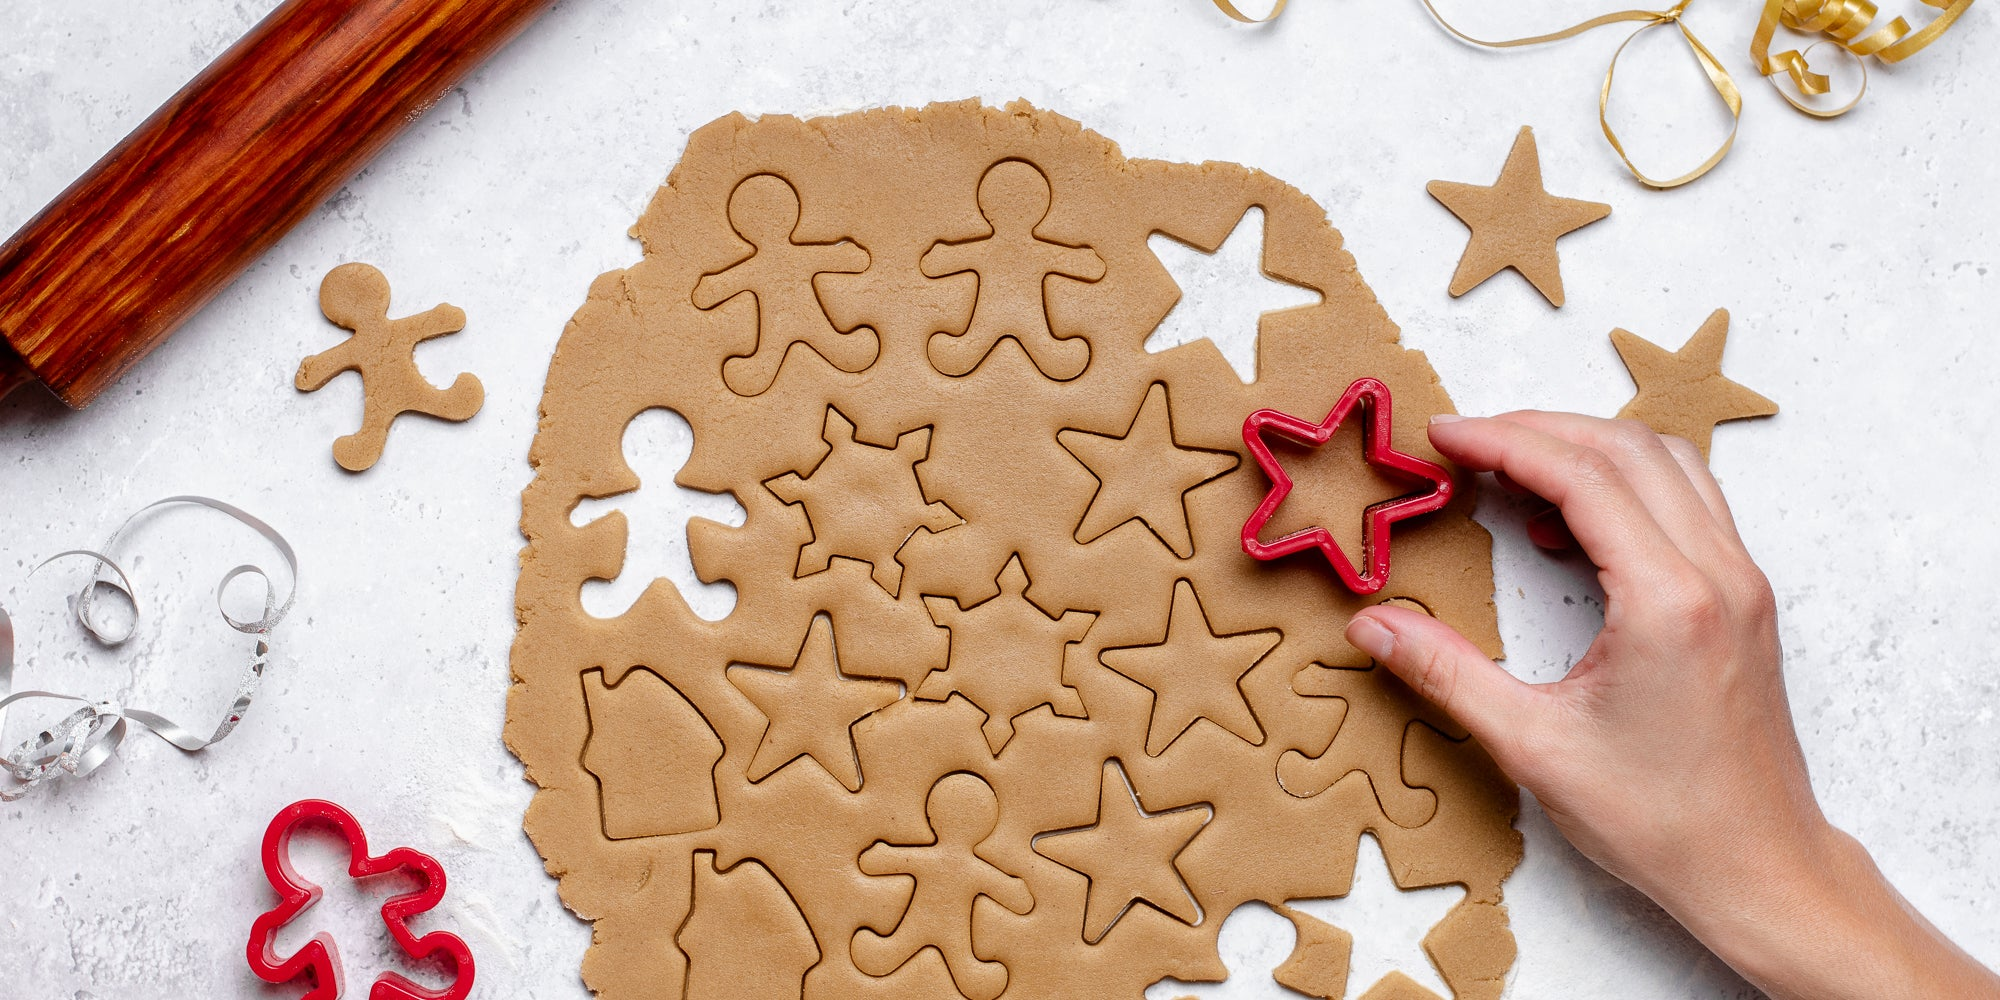 Top view of rolled out Gingerbread Dough with a hand cutting shapes out of it, next to a rolling pin and cut out gingerbread men and stars